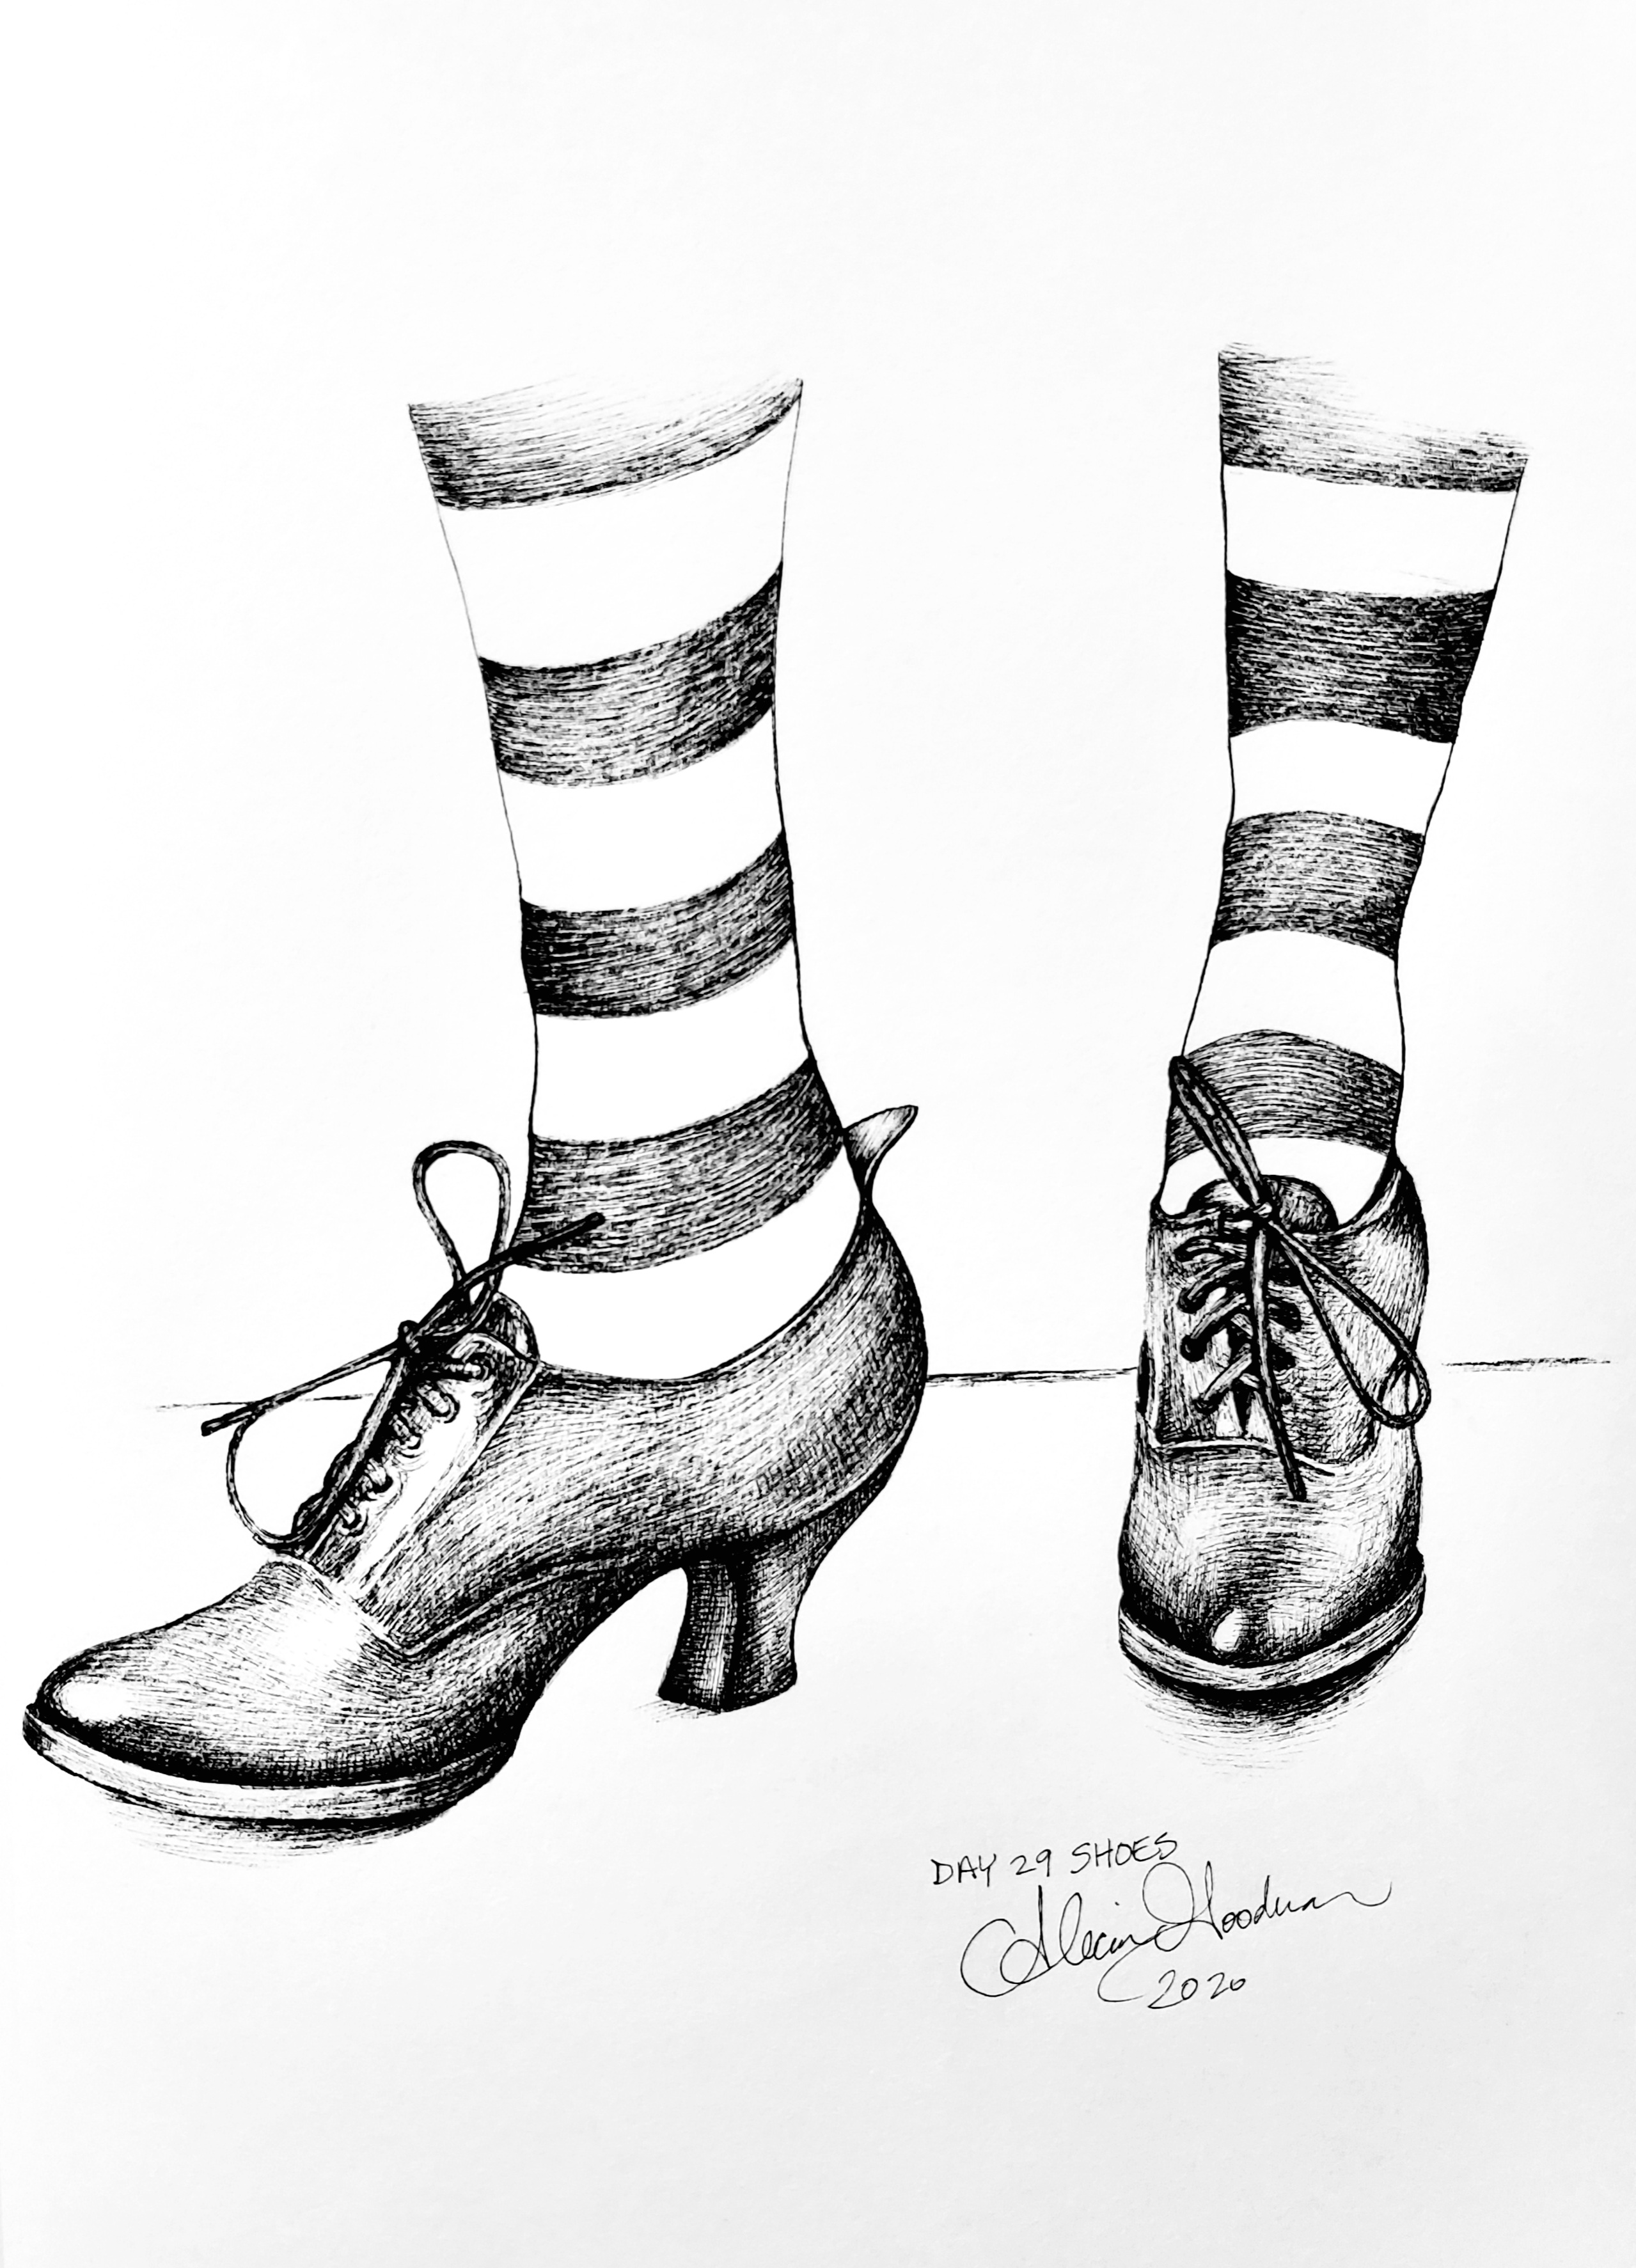 Inktober Day 29 Shoes ink drawing witch shoes with striped stockings by alecia goodman 2020 to present